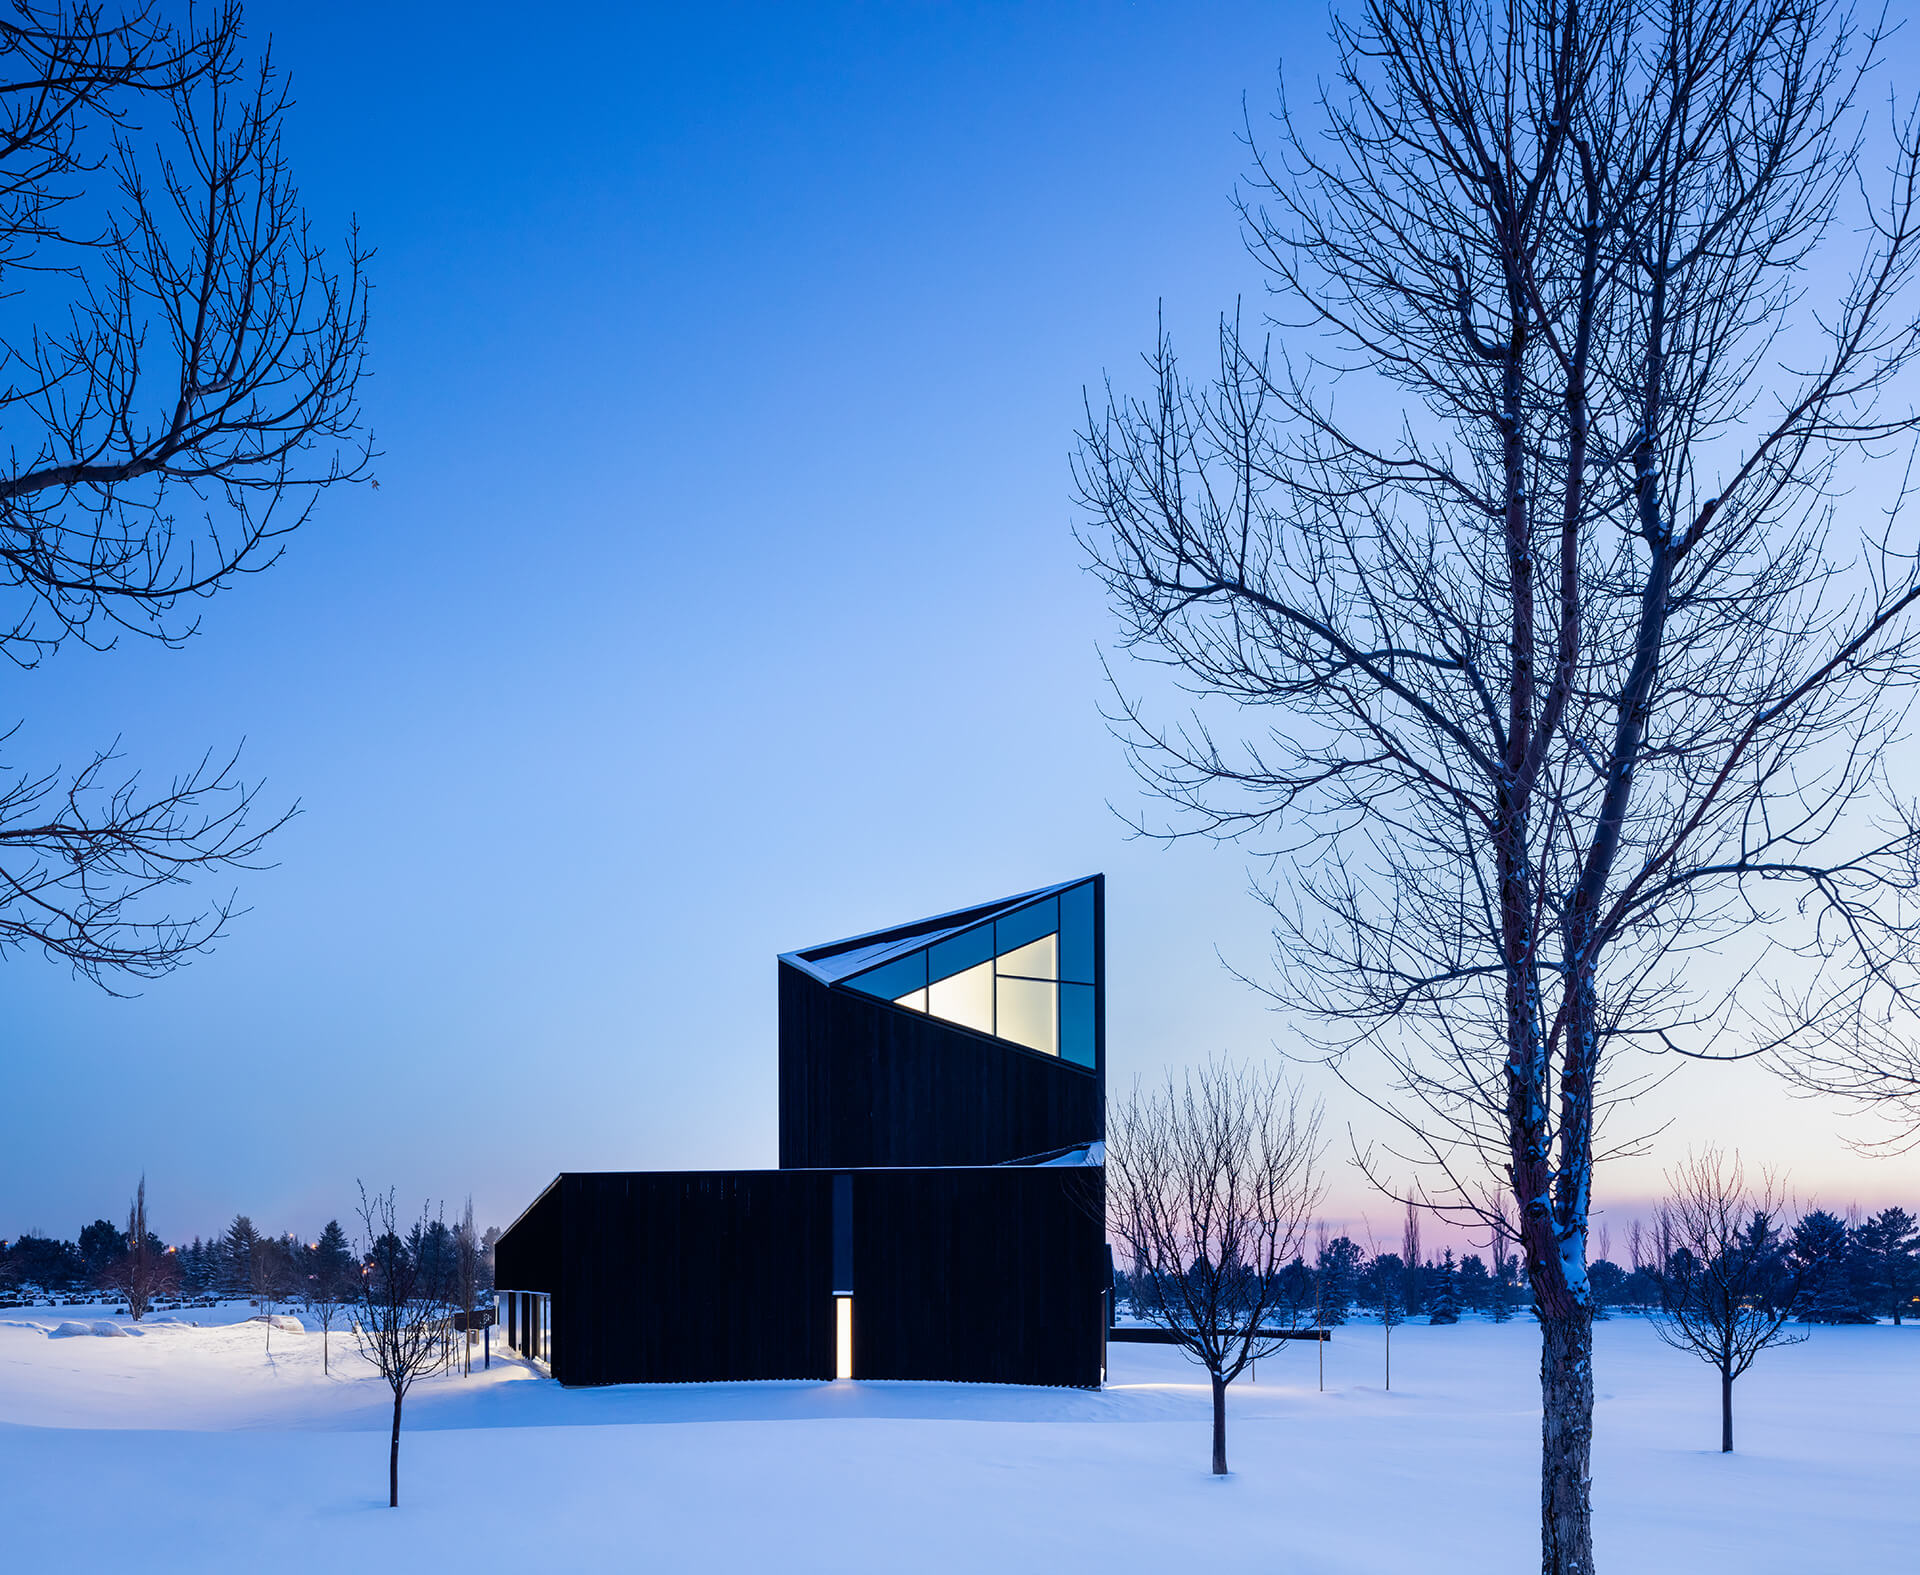 The architecture advocates for a non-religious sentiment | South Haven Centre for Remembrance by Shape Architecture | STIRworld